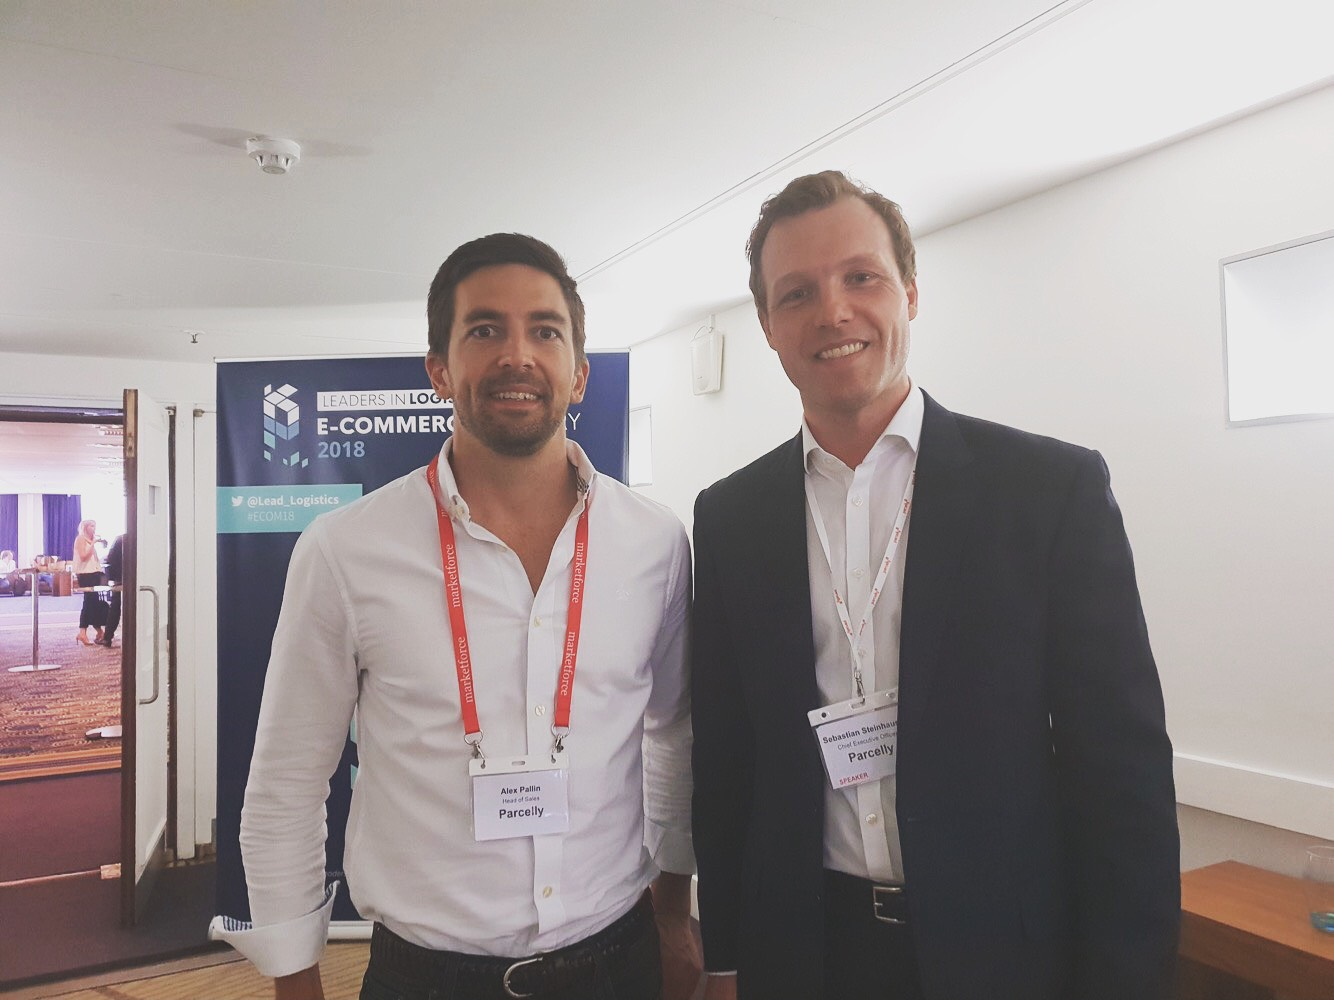 Seb and Alex Leaders in Logistics Conference 2018